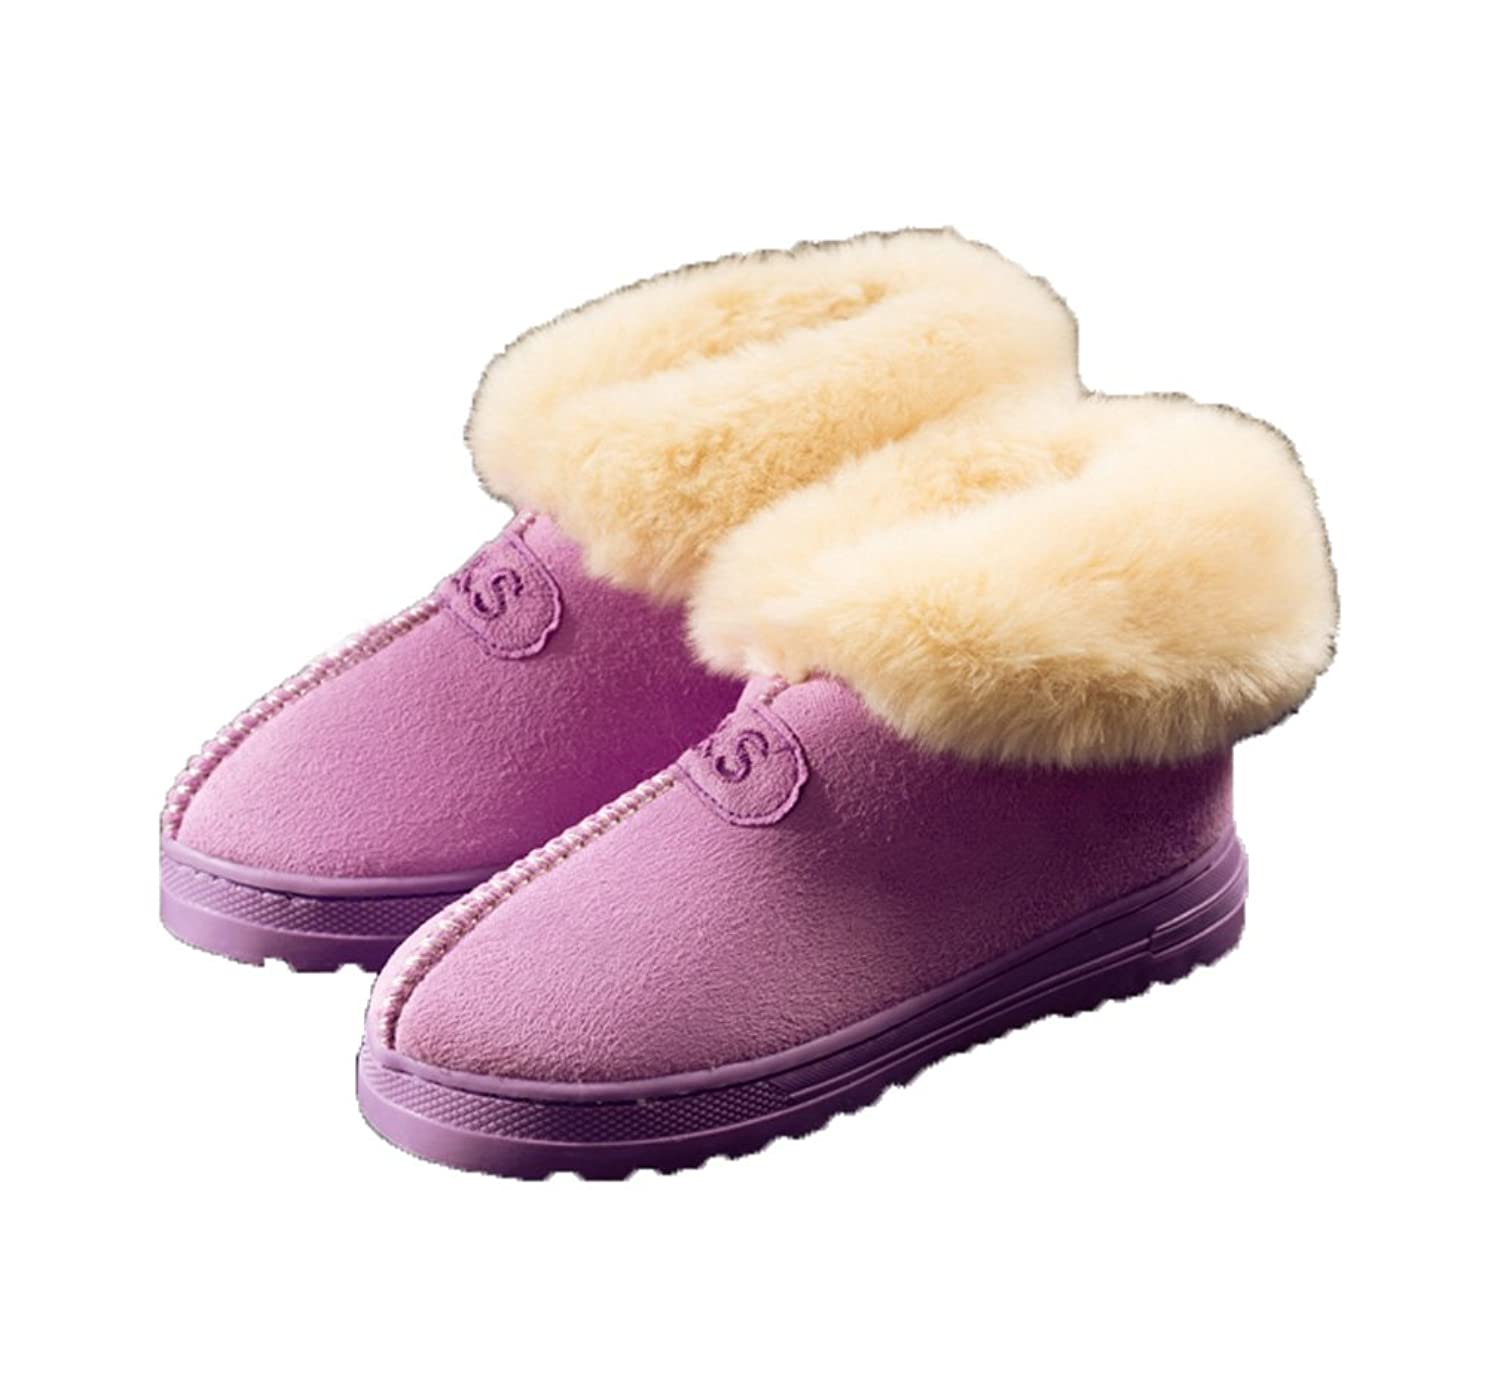 St. L'amour Mens Womens Nubuck Fur-Lined Anti-Slip Outdoor Winter Boots